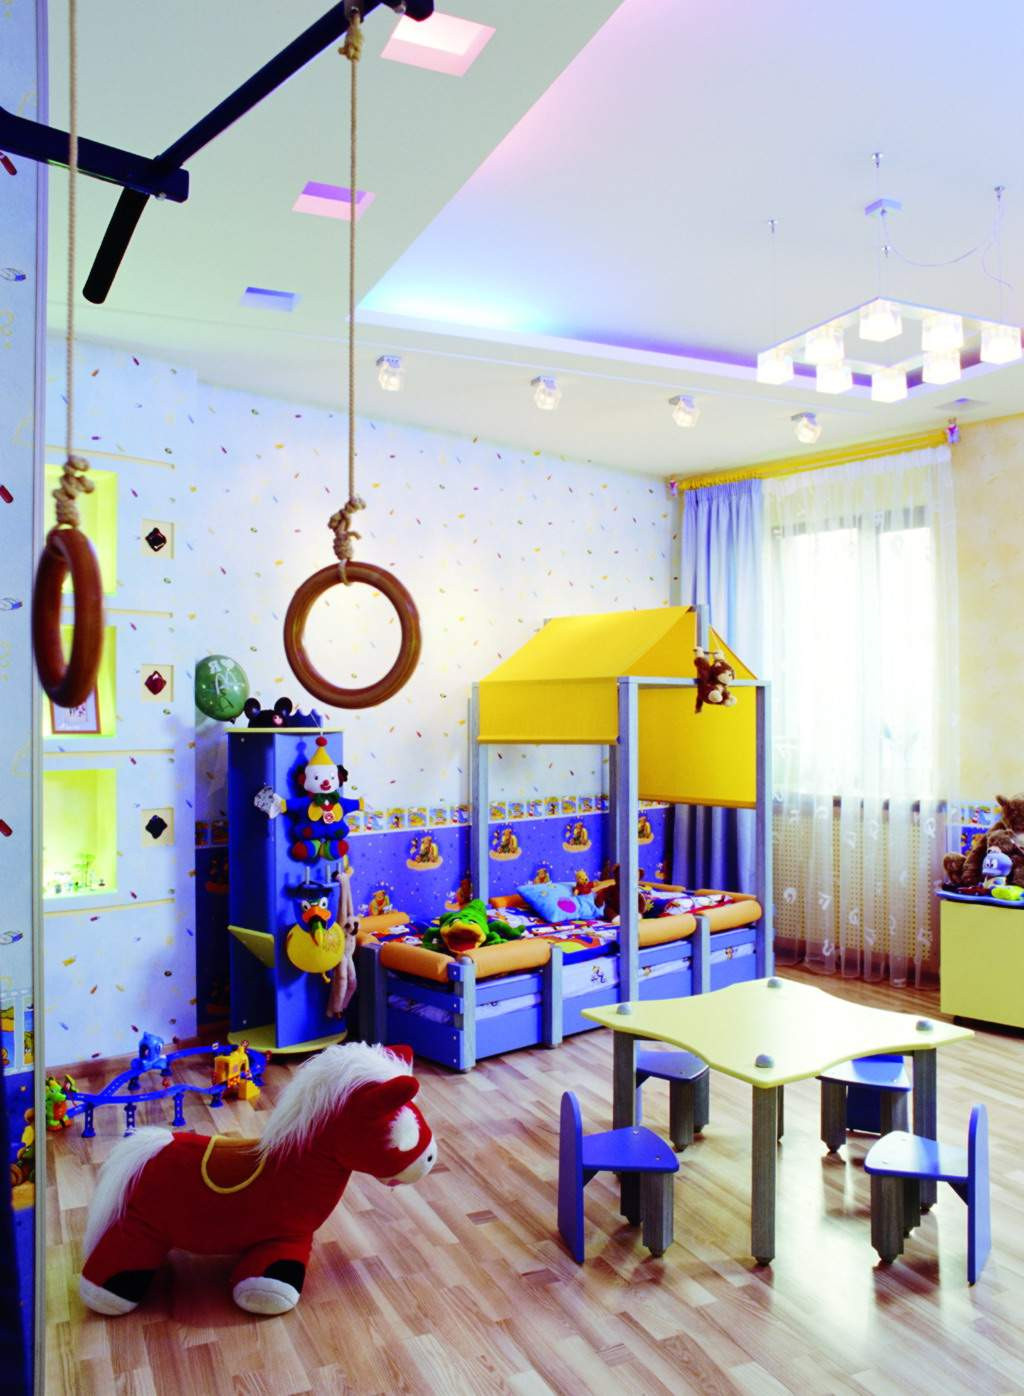 Best ideas about Kids Room Decor . Save or Pin 15 Creative Kids Bedroom Decorating Ideas Now.